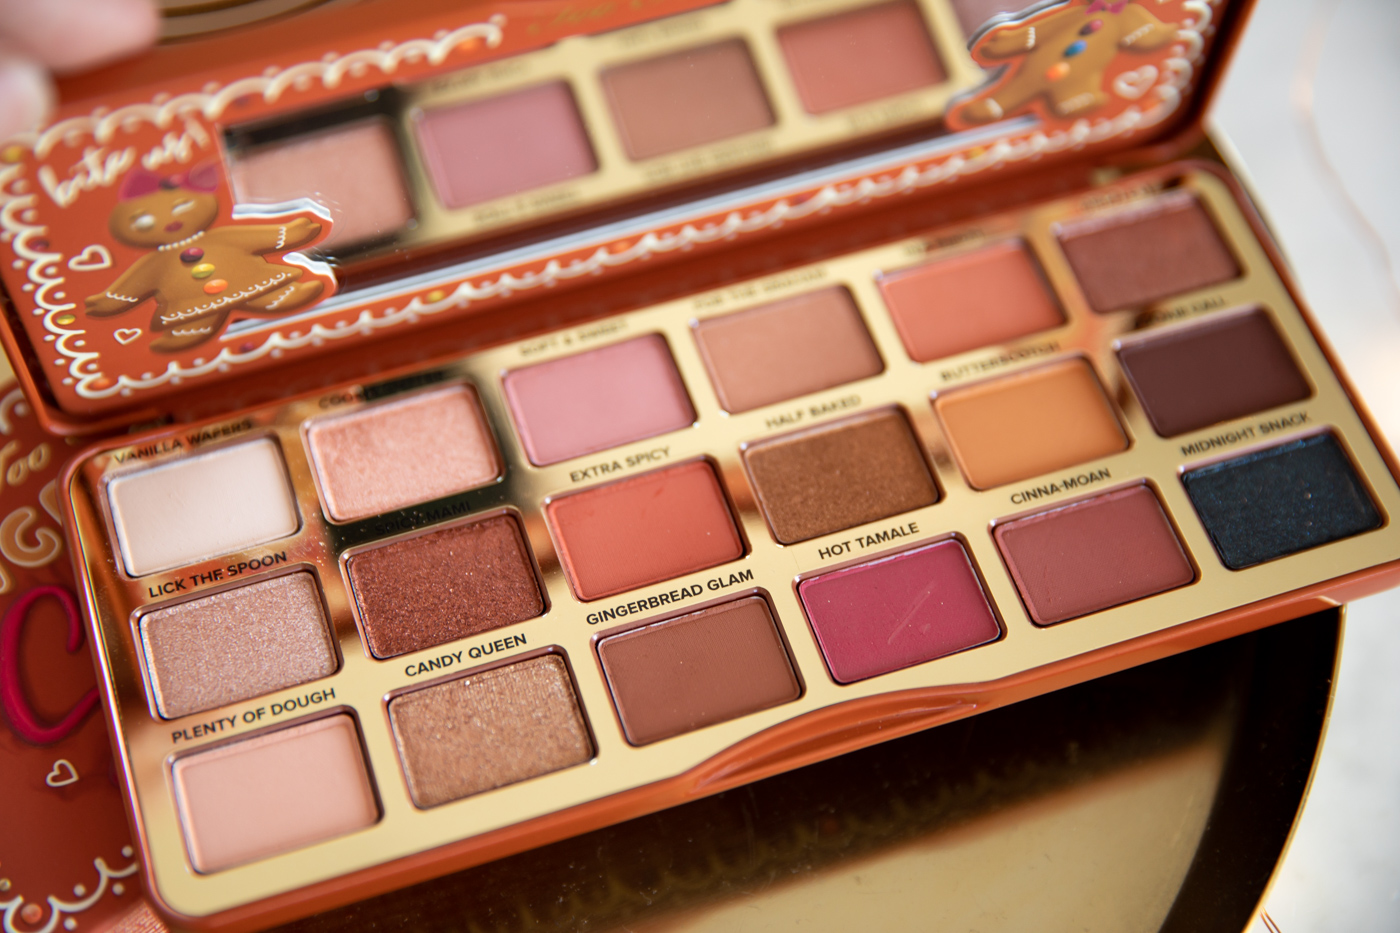 Too Faced Spiced Ginger Bread eye shadow